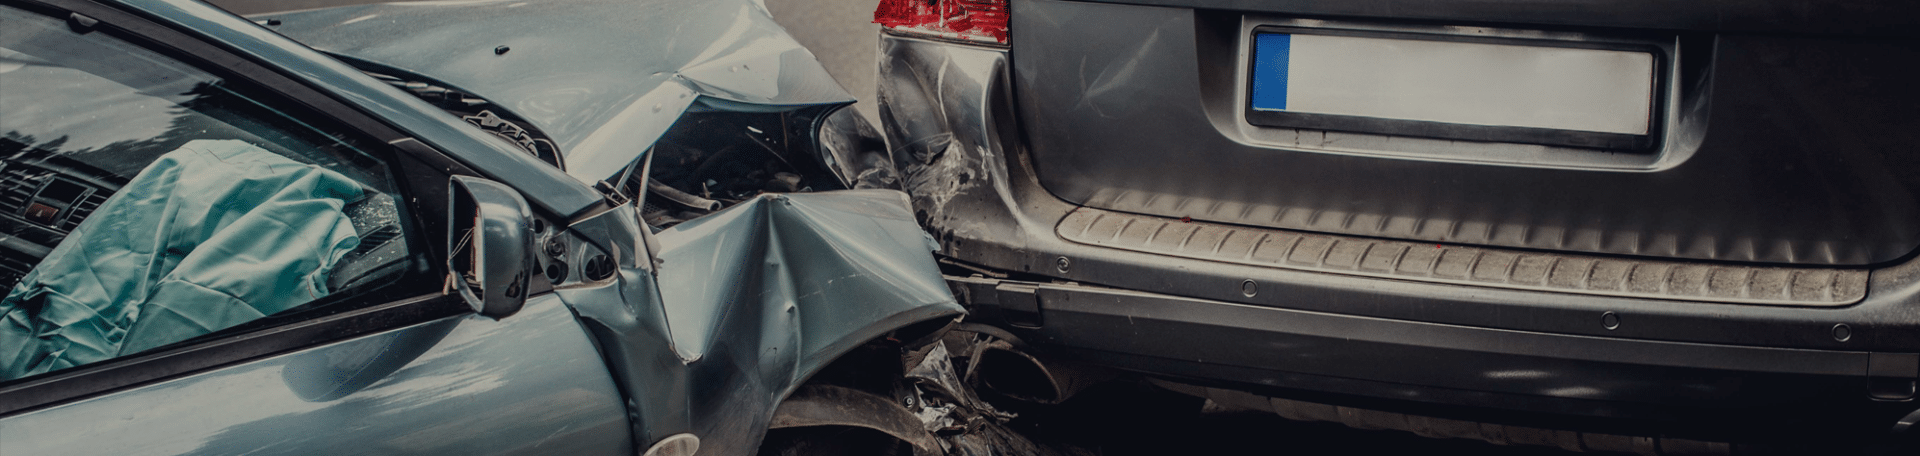 One Injured in a Car Crash at Avalon Avenue and 89th Street in Los Angeles